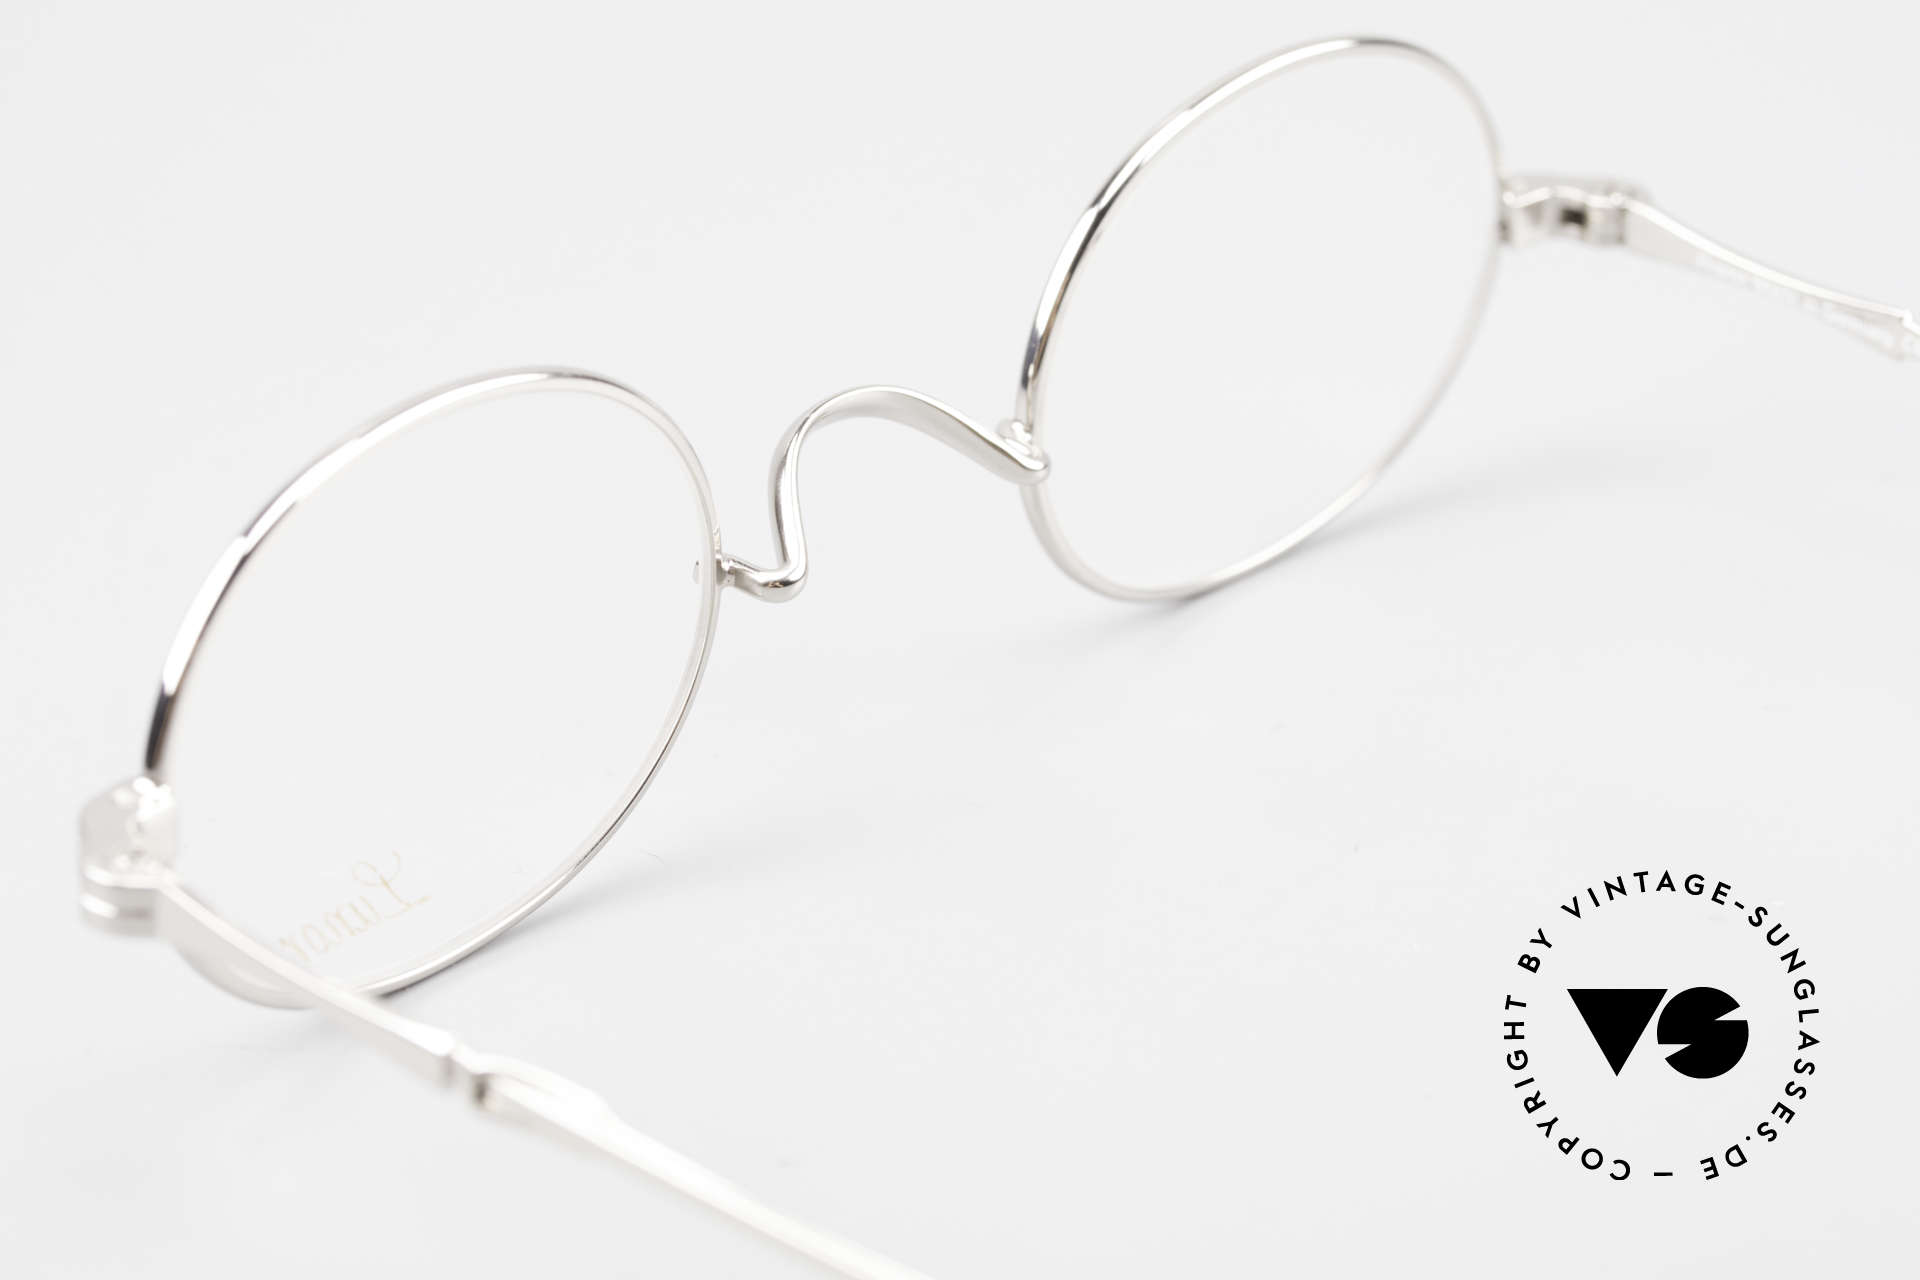 Lunor I 10 Telescopic Oval Eyeglasses Slide Temples, Size: small, Made for Men and Women